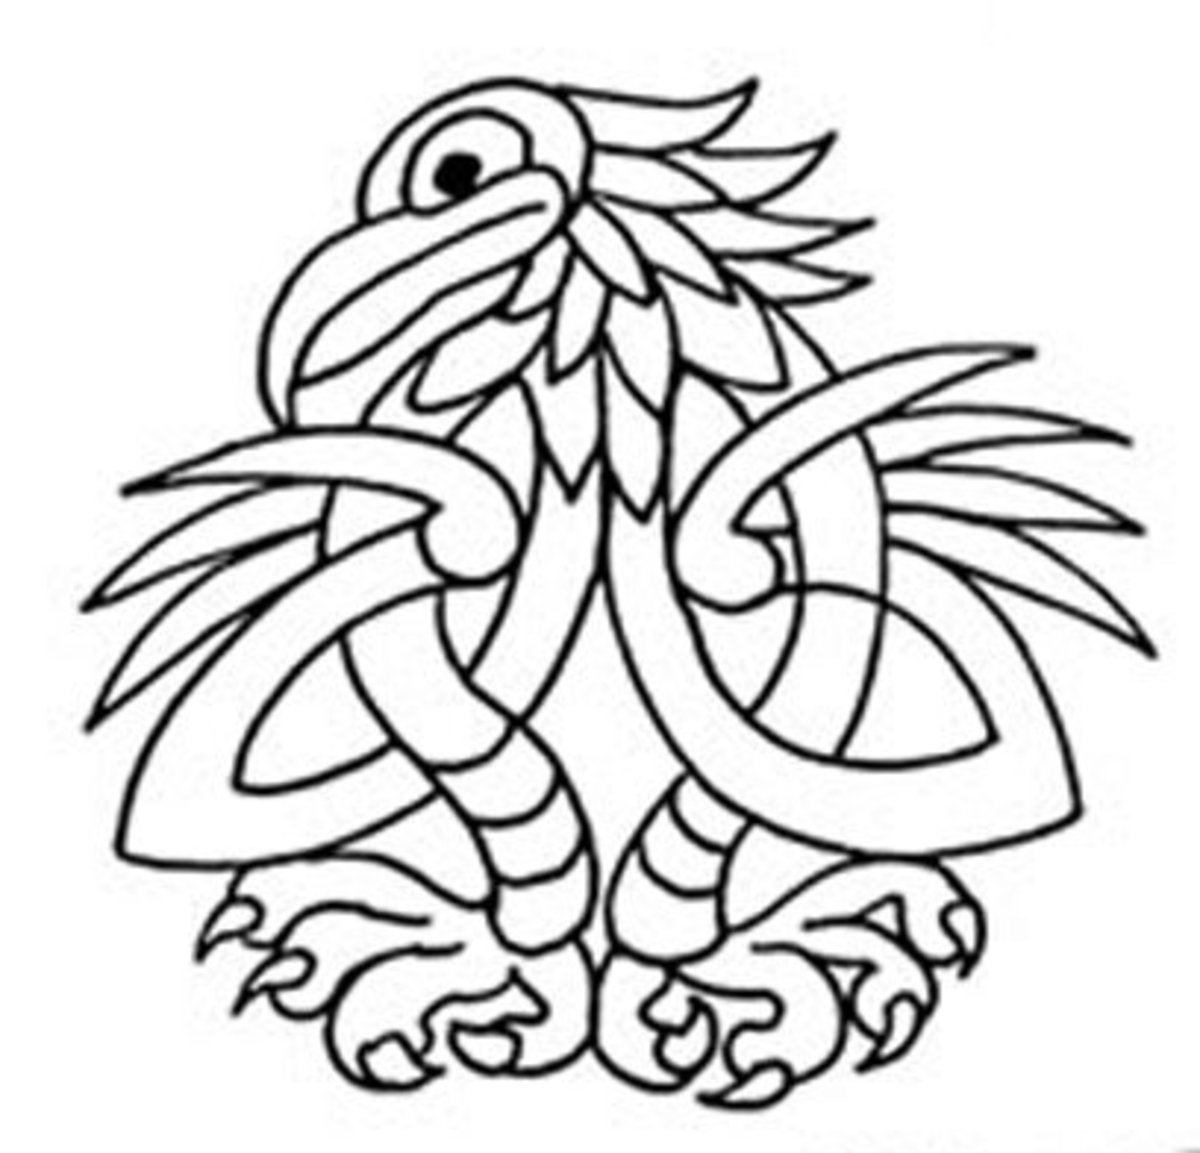 Celtic Design Art Coloring Pages for Kids Colouring Pictures to Print - Eagle